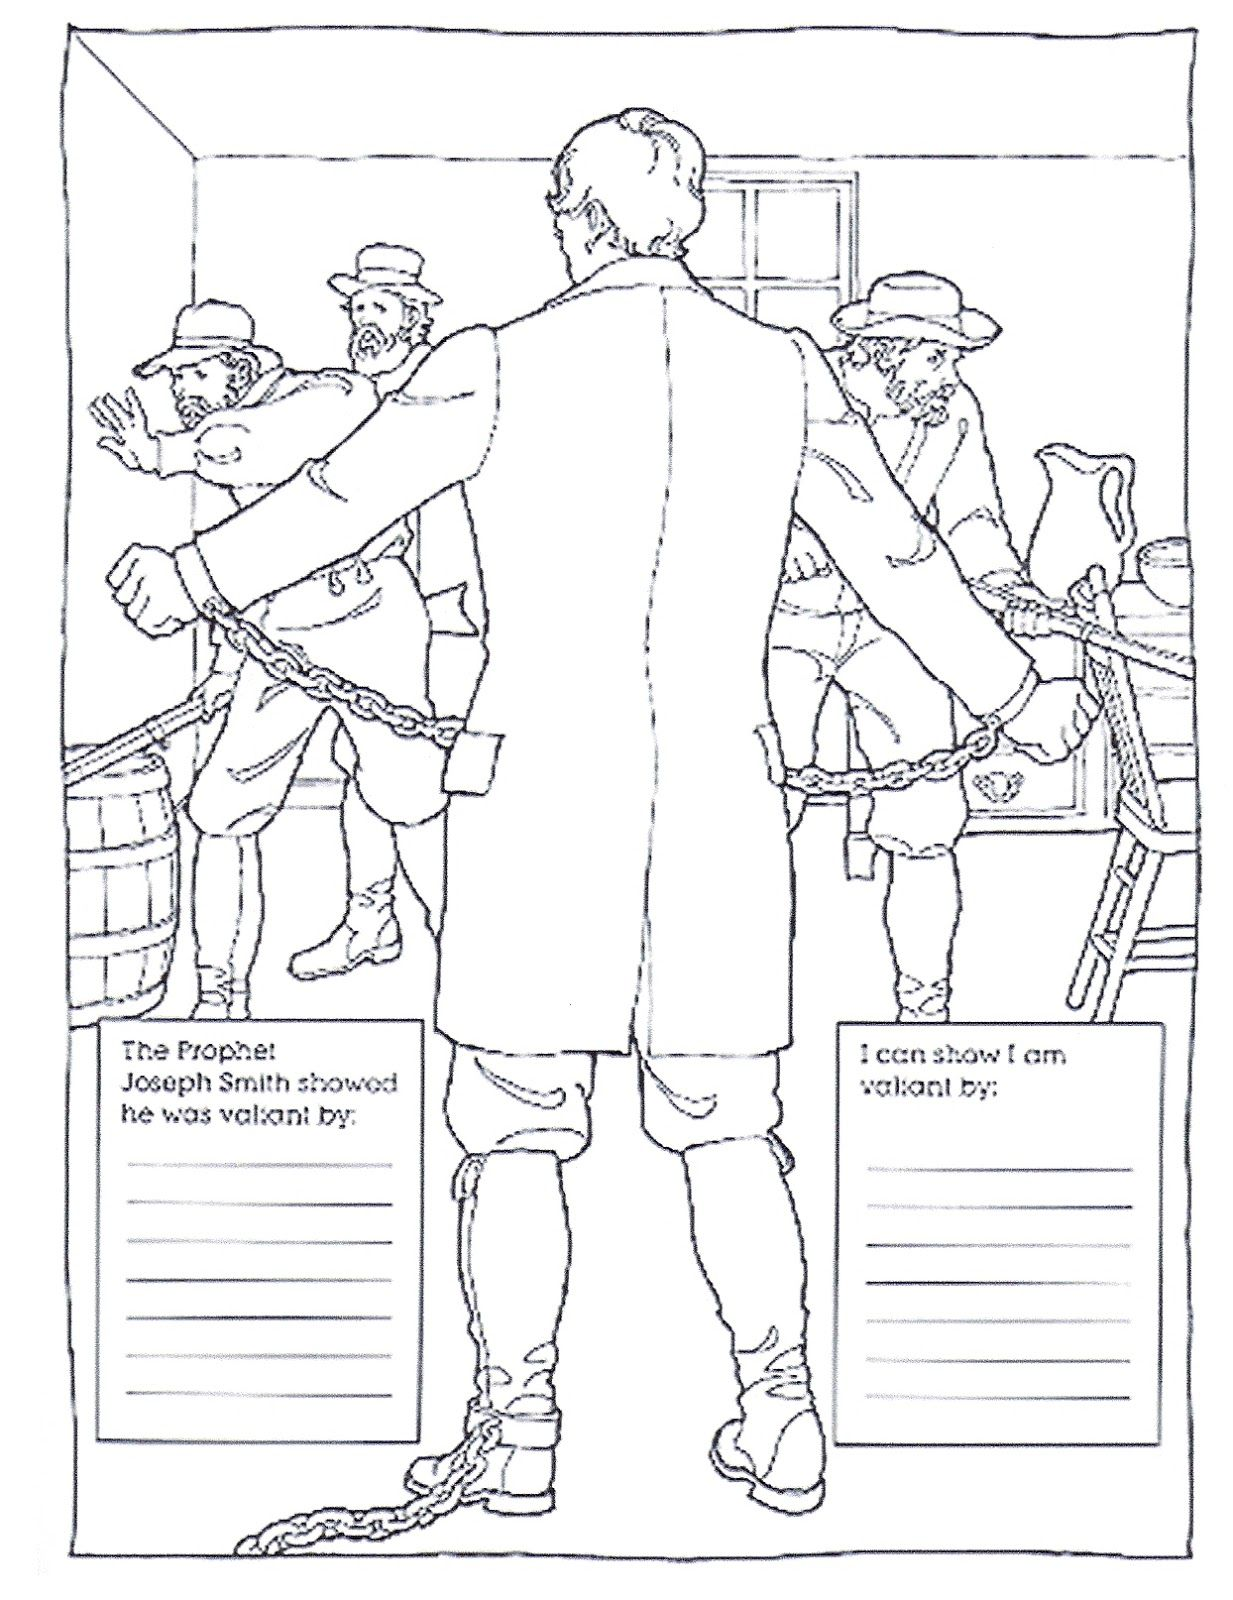 Primary 5 Manual Lesson 32 Joseph Smith is Jailed Unjustly Journal ...